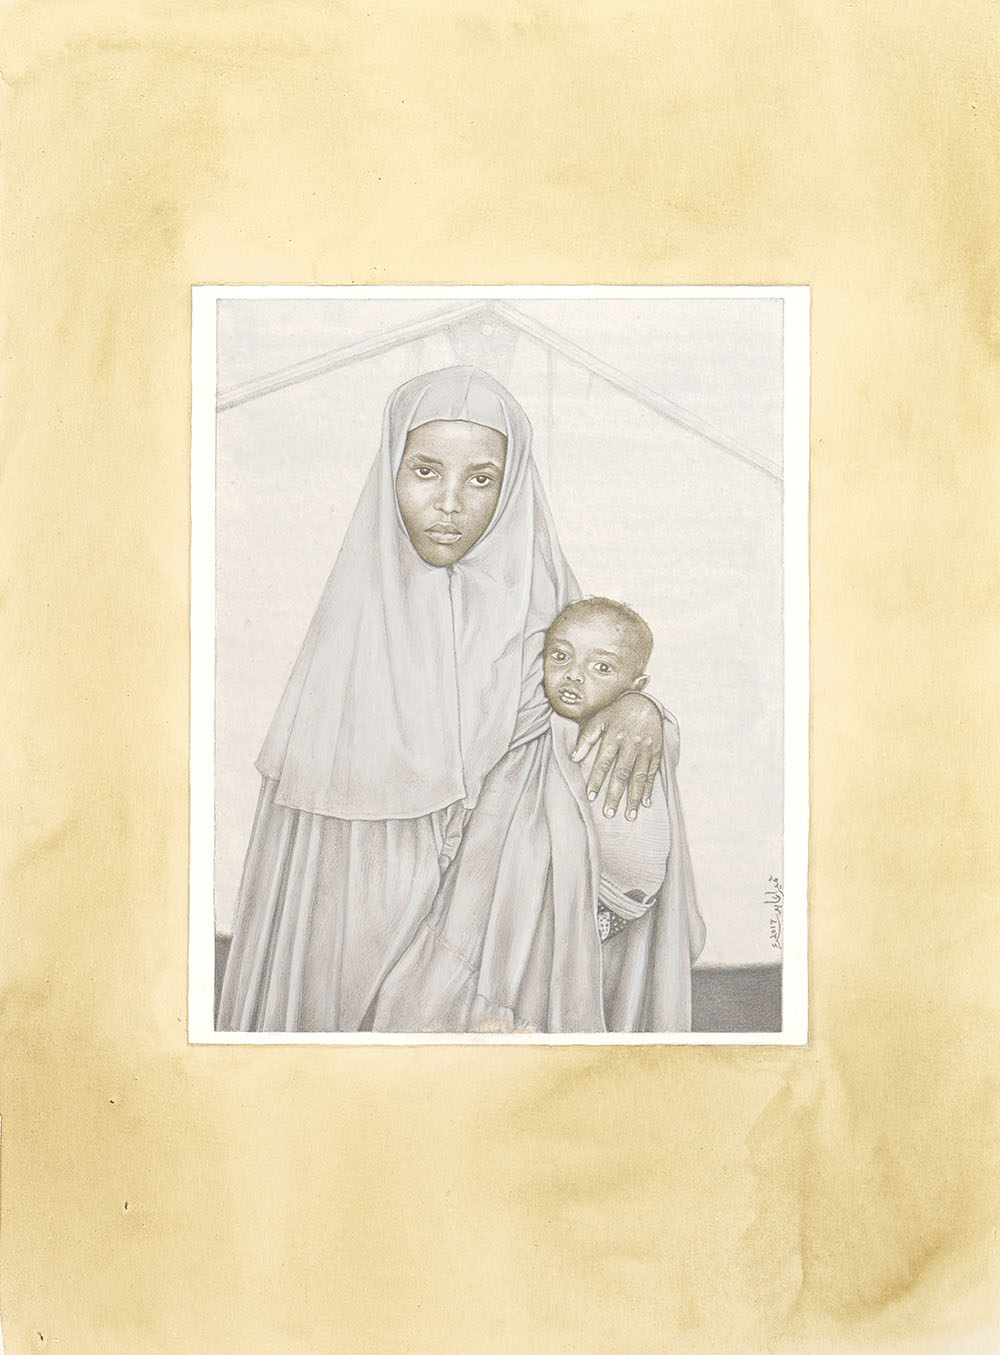 Title: Sofia Hassan Mahmood and Isaac Mahmood, Ages unknown, Somalia  Medium: Gouache, tea wash, and pigments on handmade wasli paper Dimensions: 7.75 x 6.25 inches unframed year: 2017